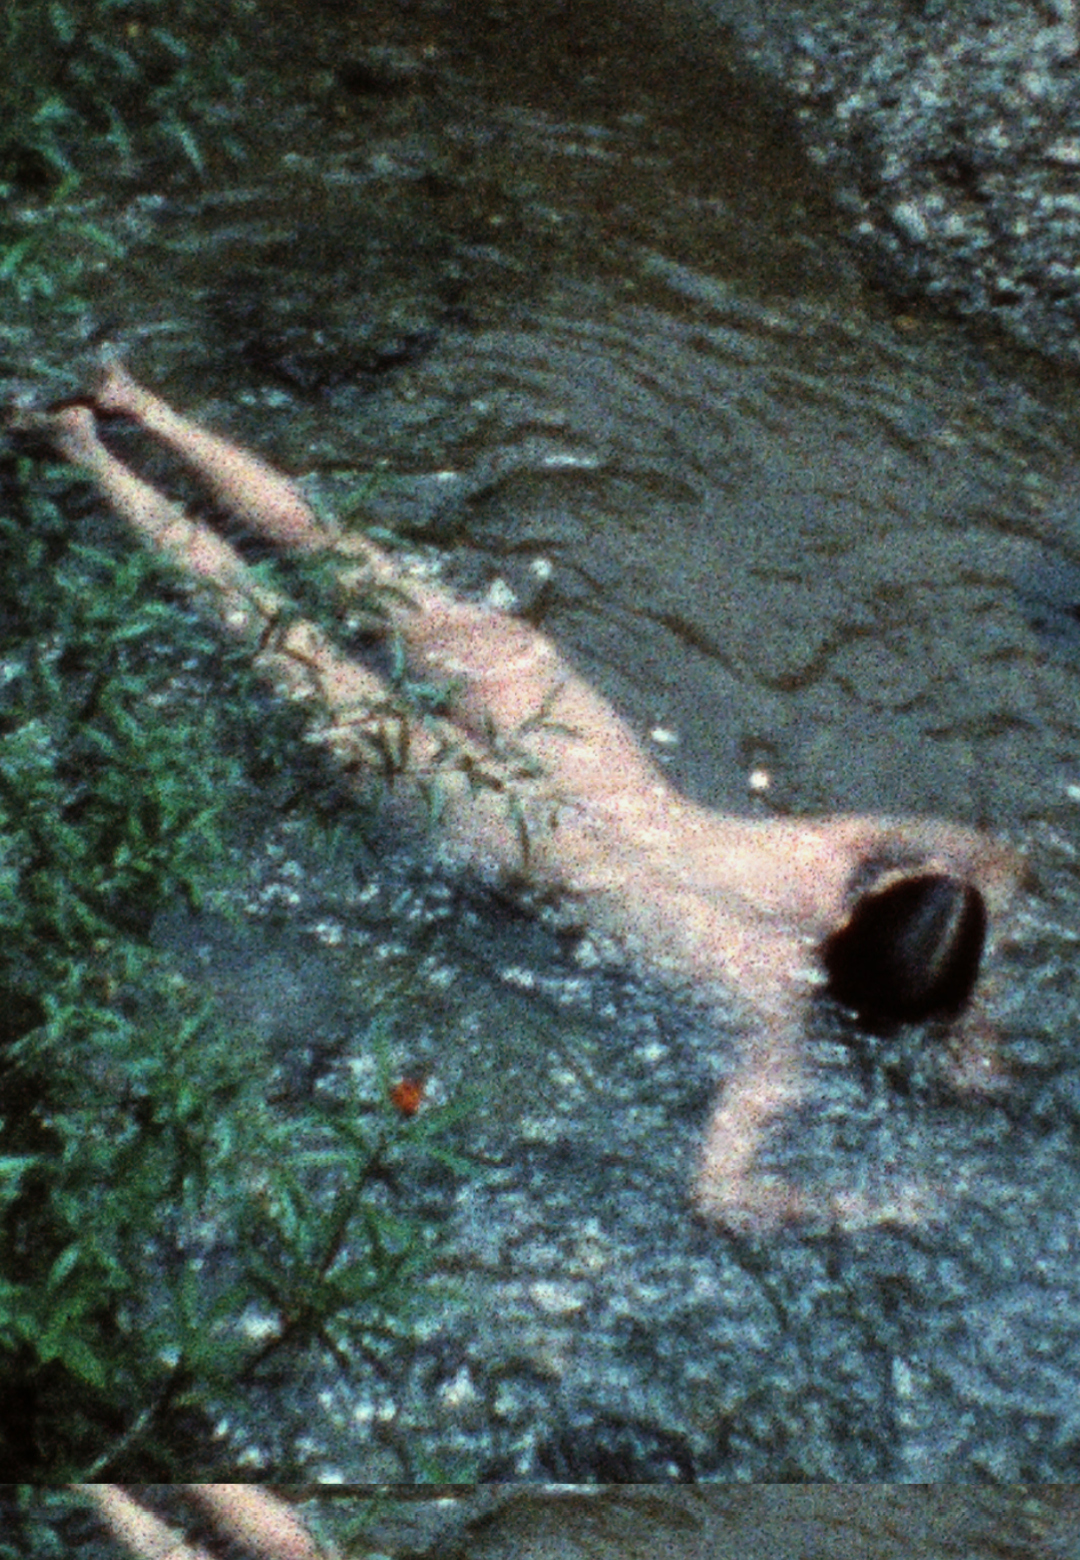 Ana Mendieta, Creek, 1974, Super-8mm film transferred to high-definition digital media, colour, silent. Running time: 3:11 minutes | Earthbound | Ana Mendieta | STIR